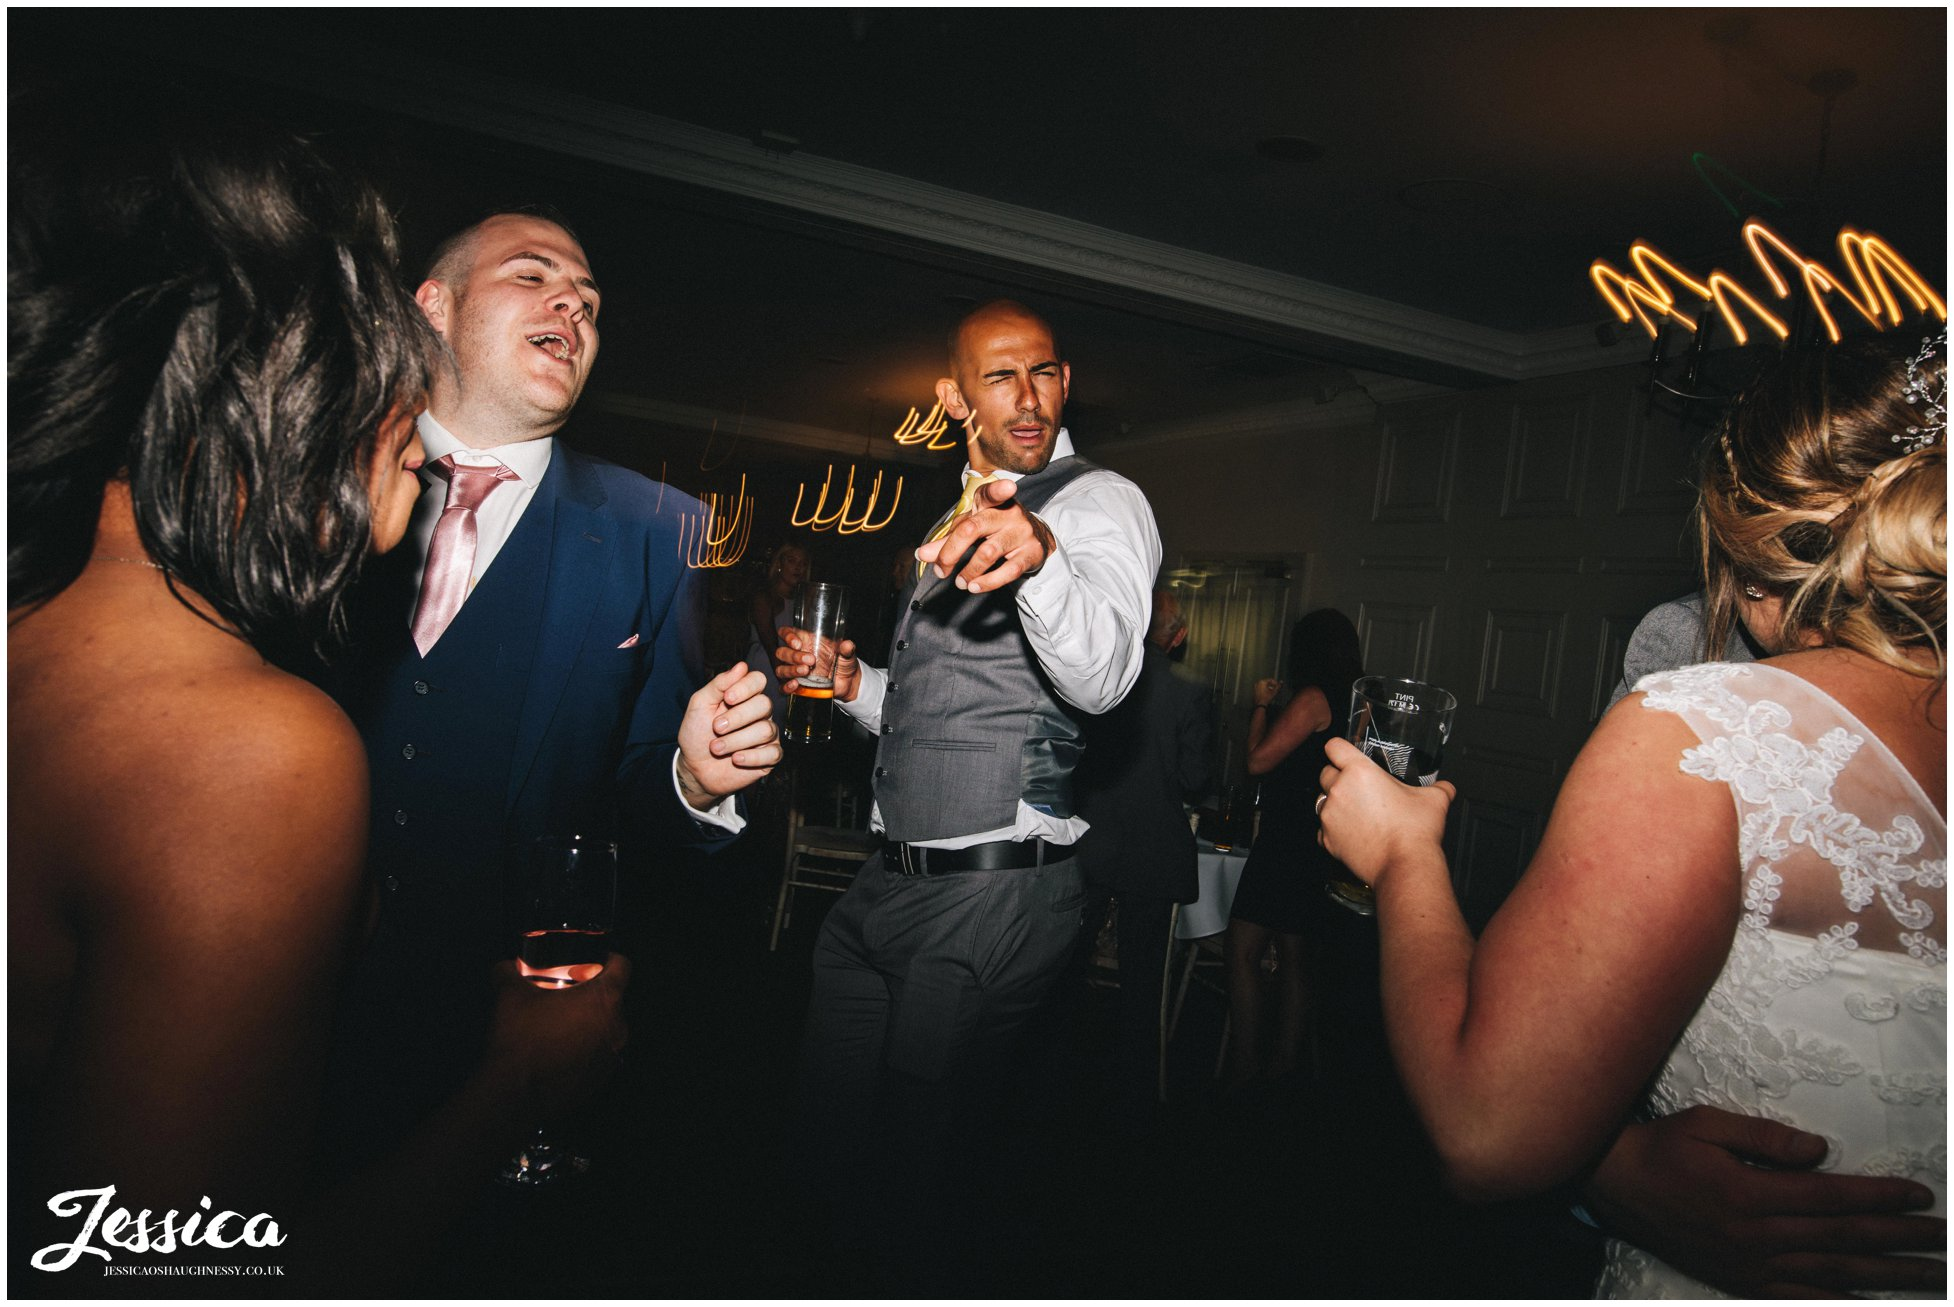 guests enjoying the celebrations on the dancefloor for the new couple